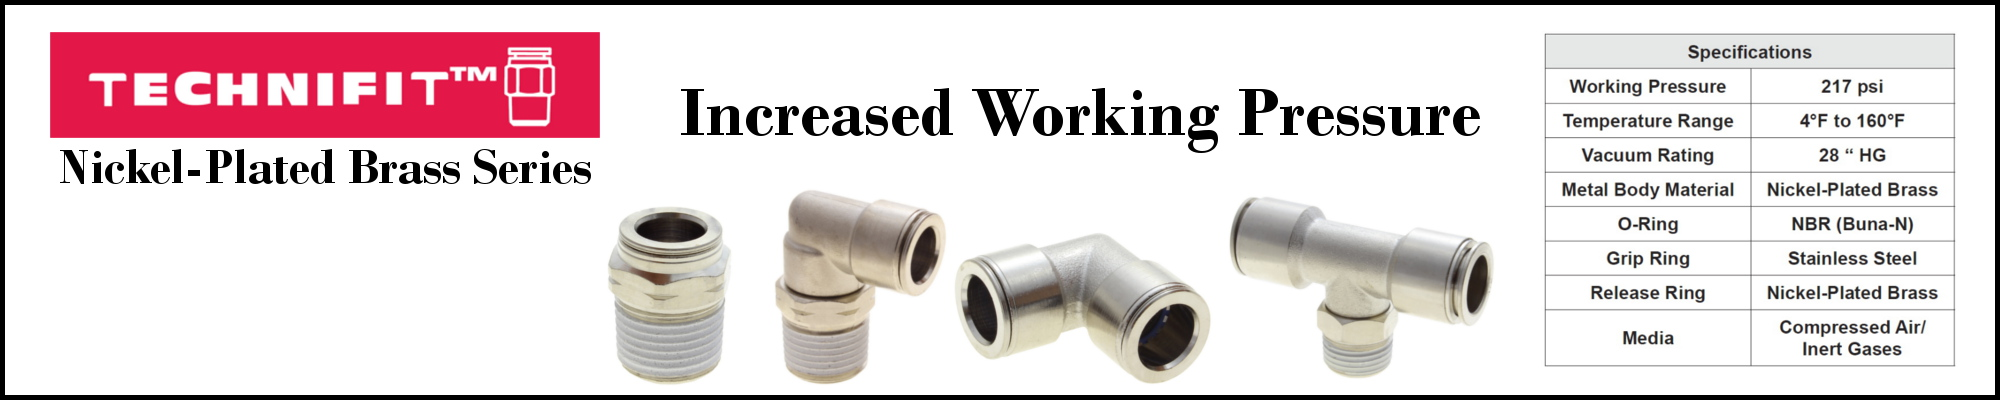 Technifit Nickel-Plated Brass Series Push-to-Connect Fittings